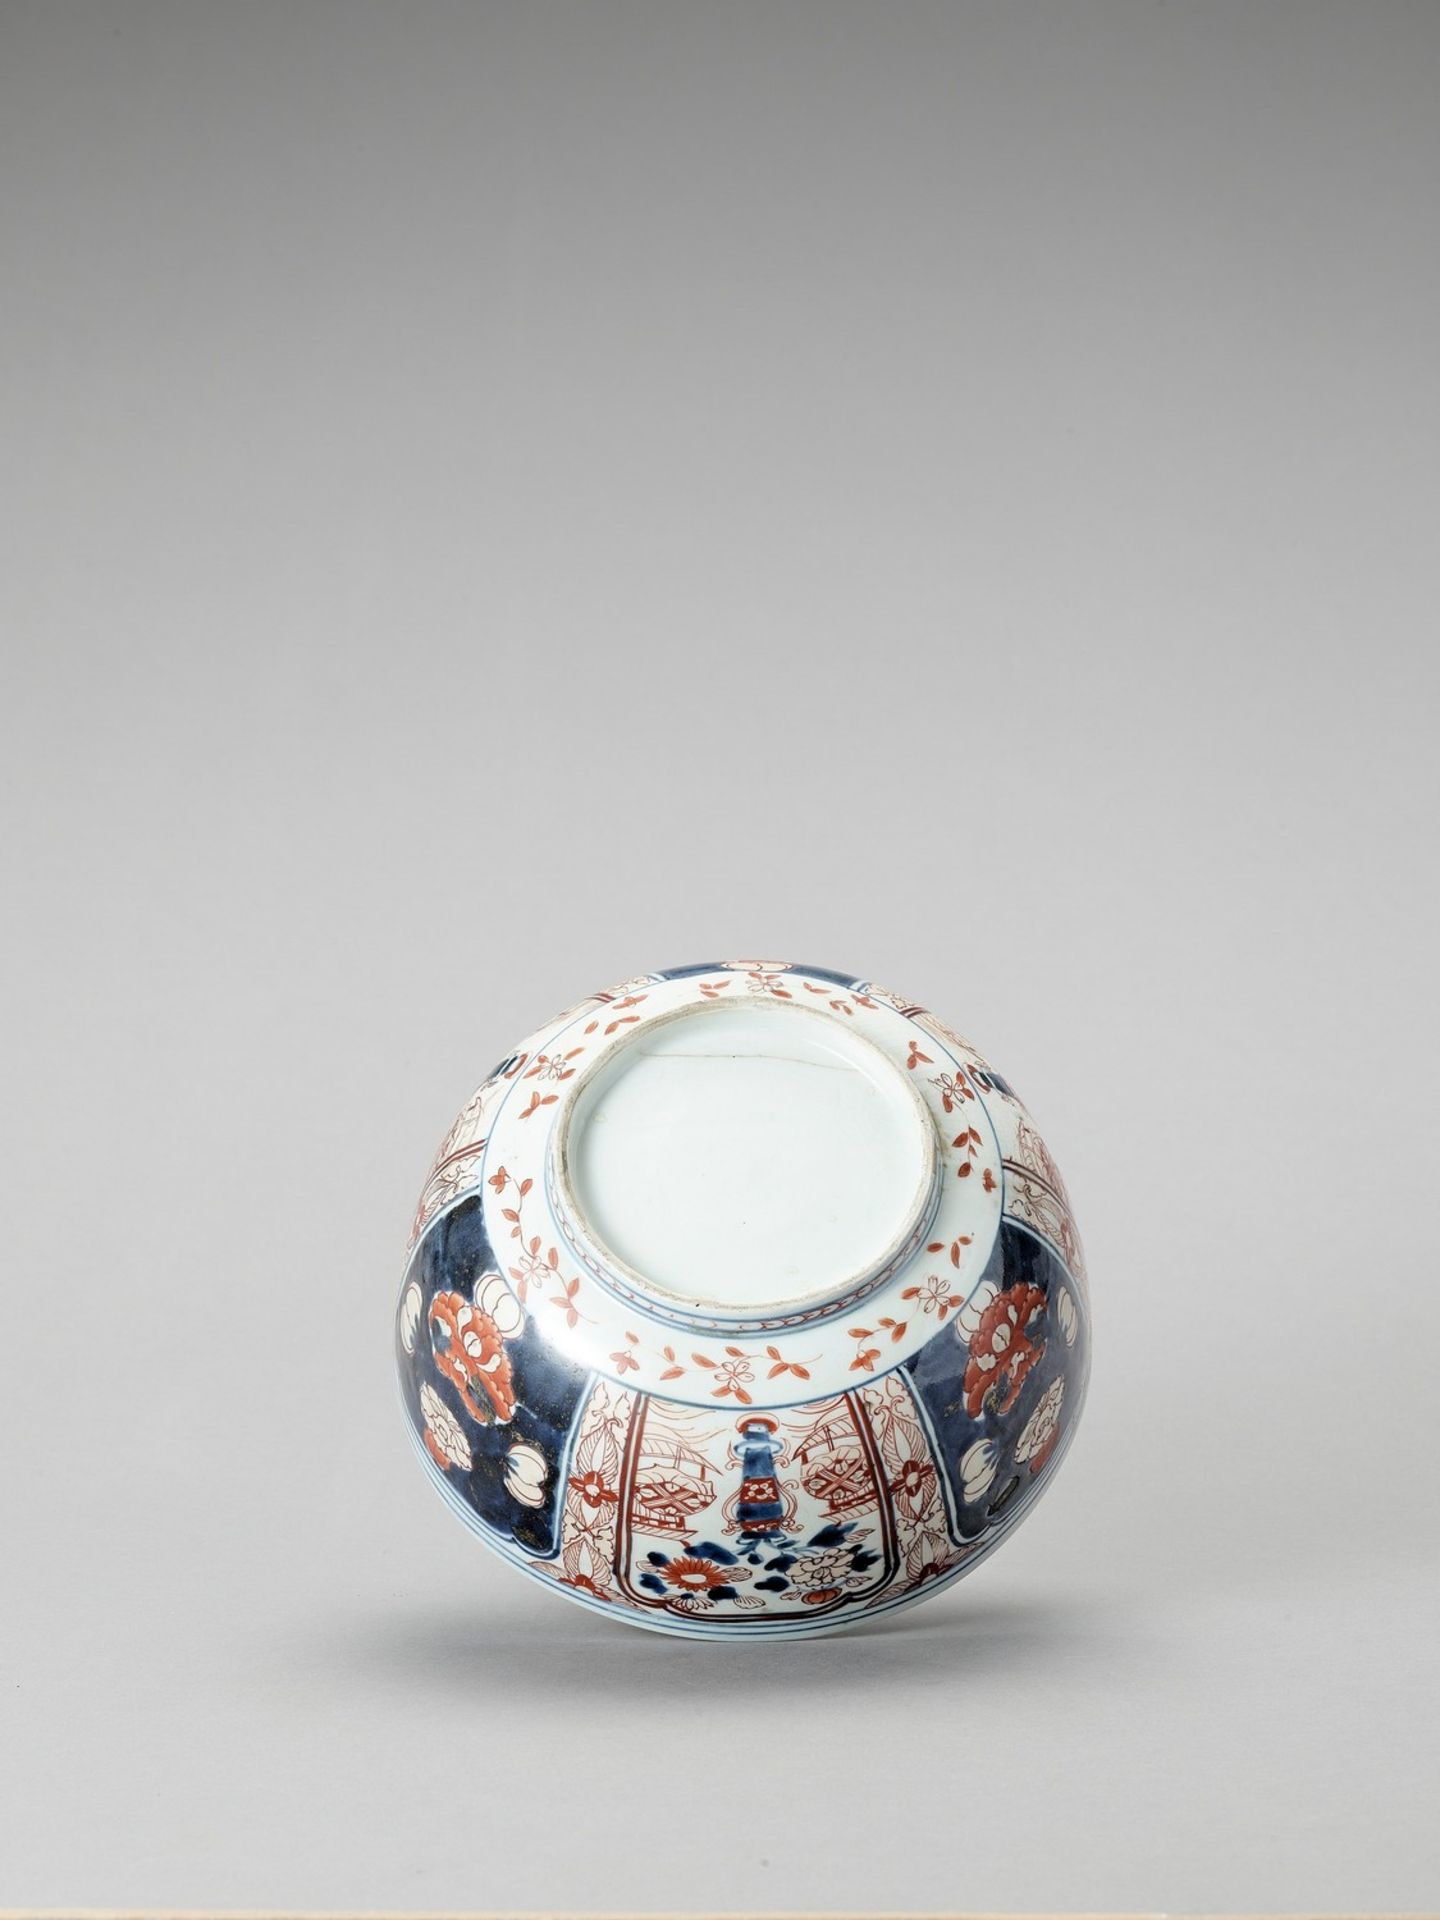 AN IMARI PORCELAIN BOX WITH COVER - Image 7 of 7